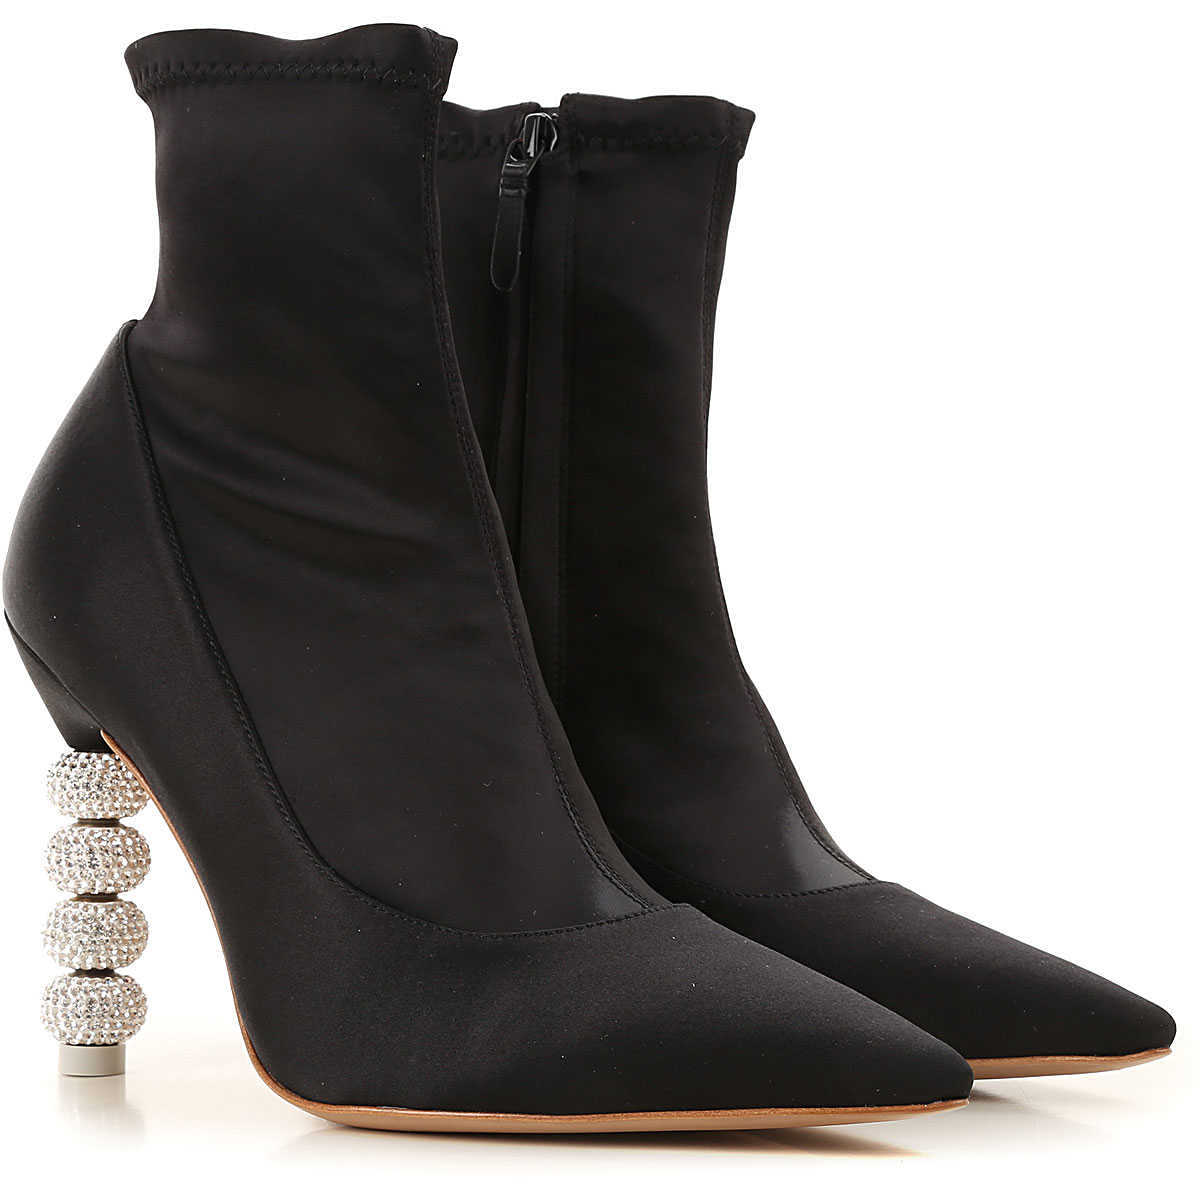 Sophia Webster Boots for Women 5.5 6 7.5 Booties On Sale in Outlet UK - GOOFASH